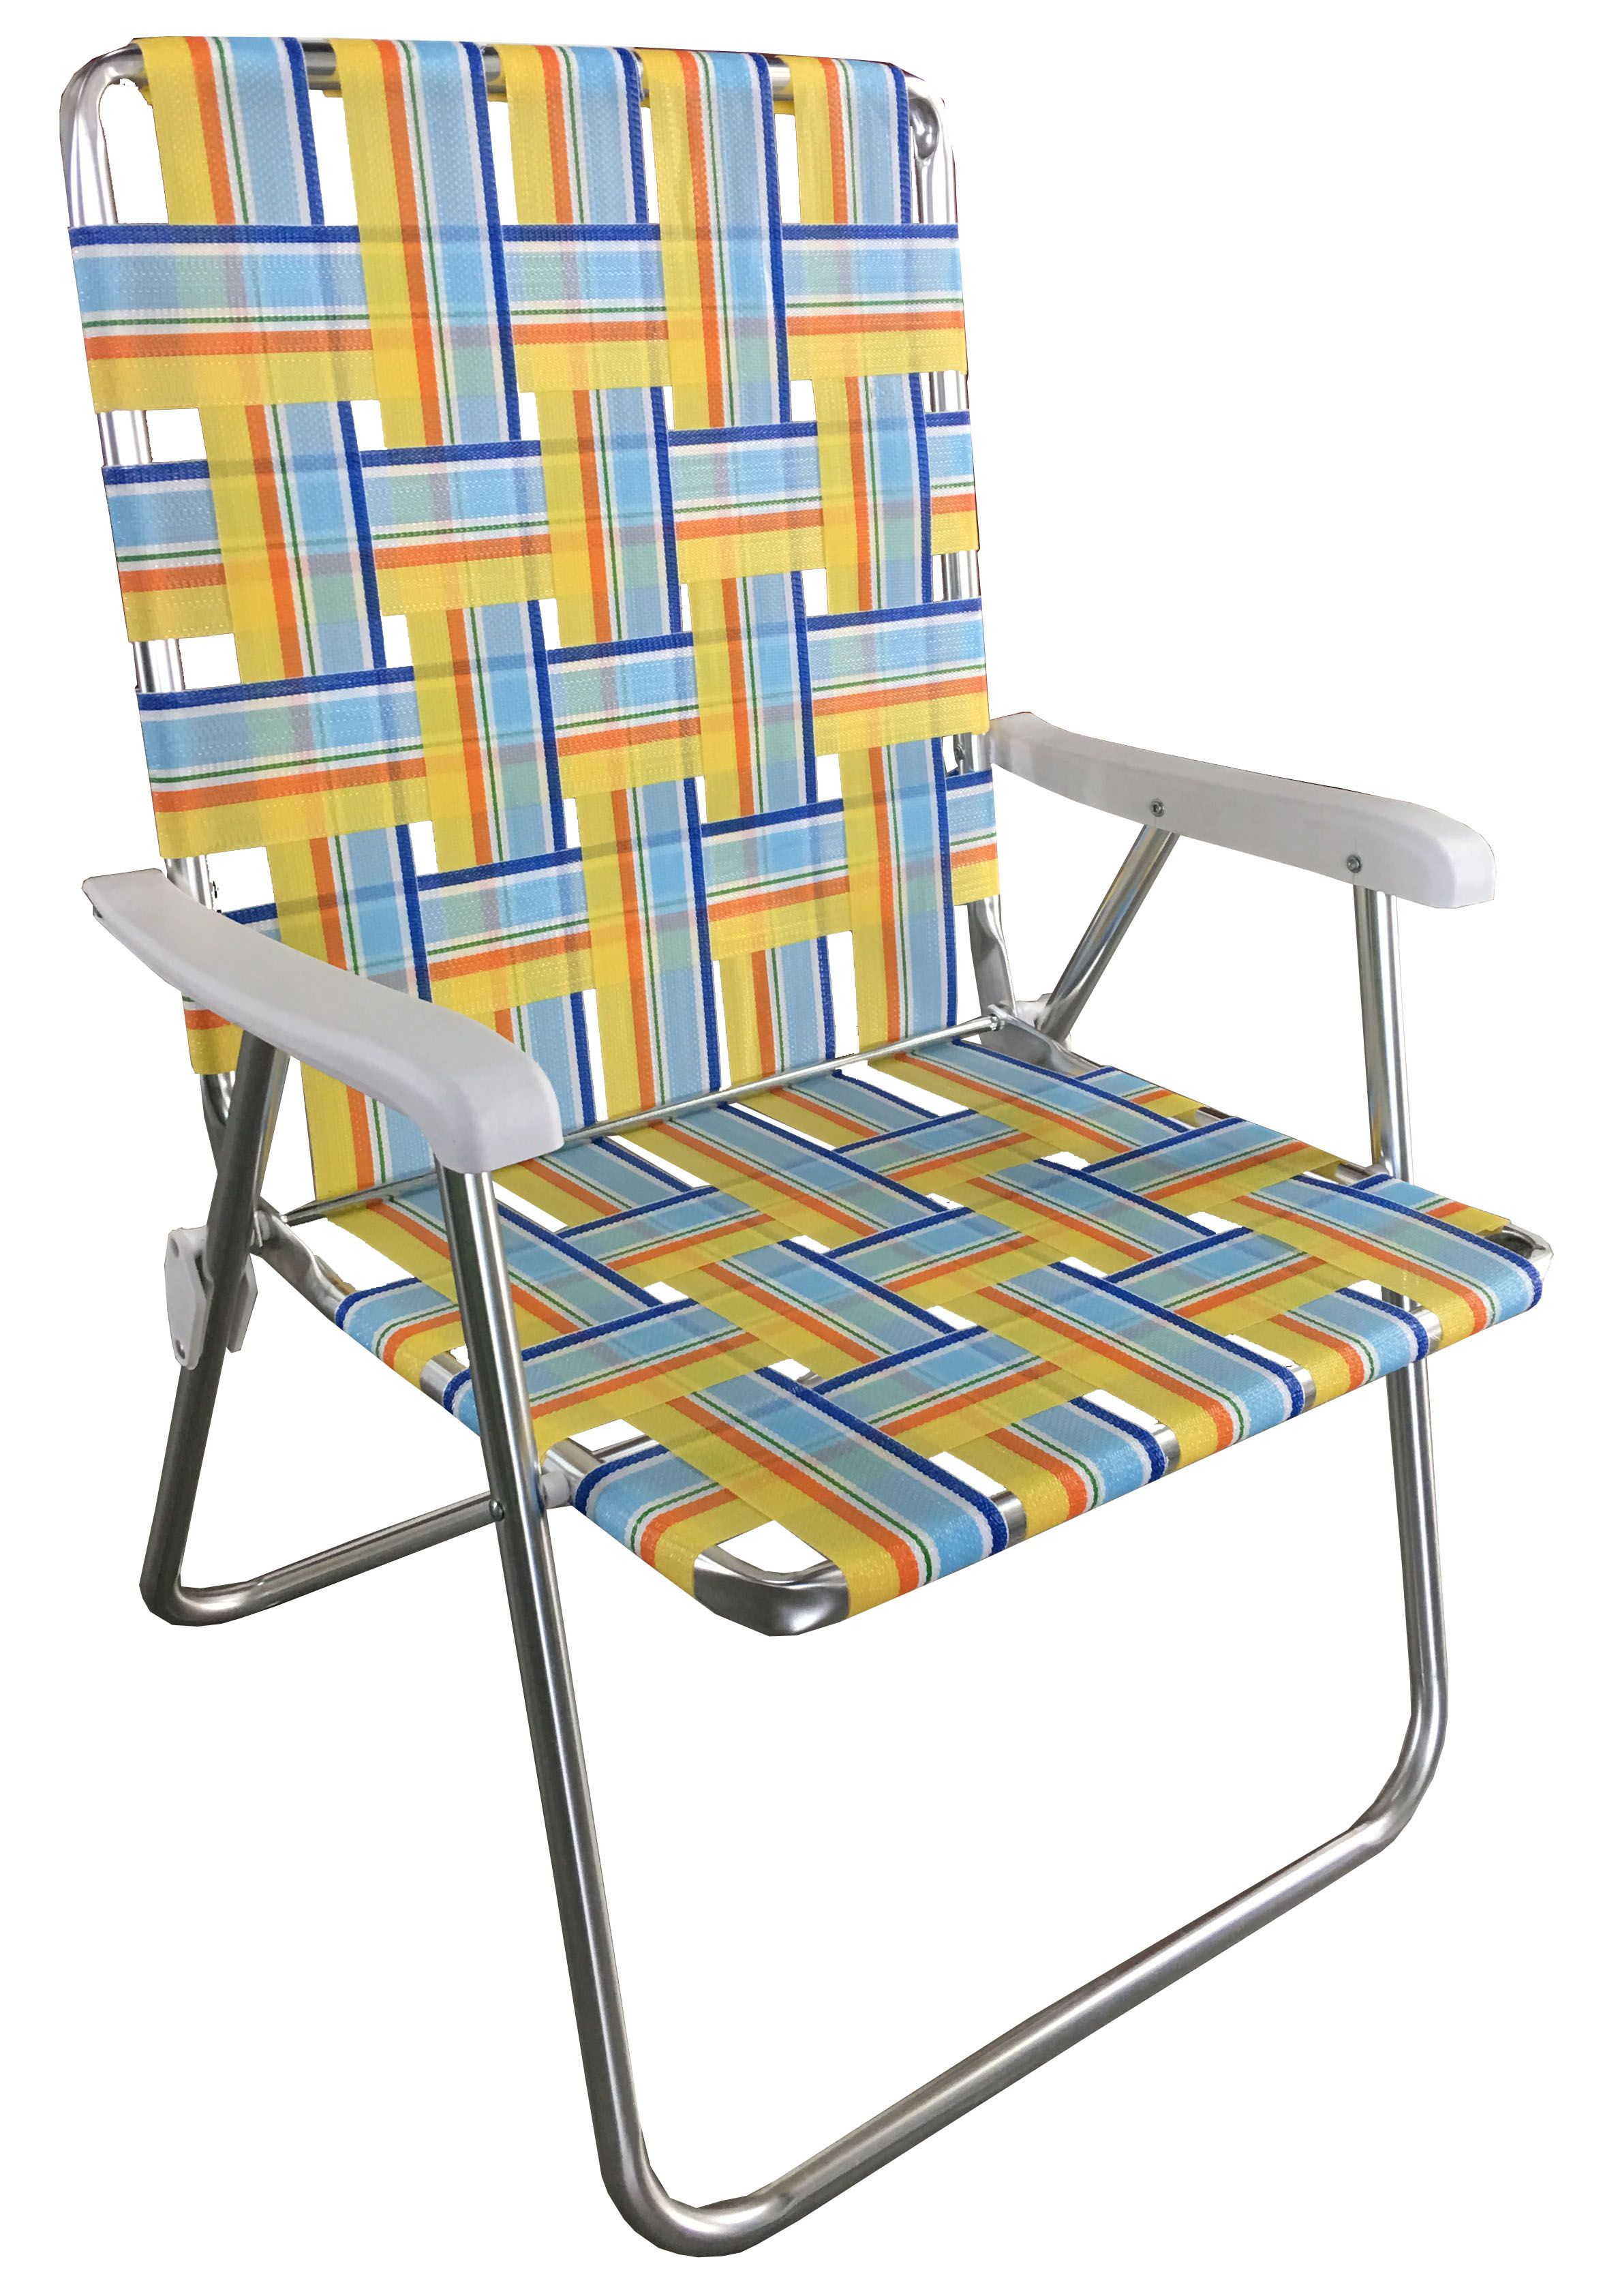 Terrific Image Result For Outdoor Vintage Aluminum Web Chair Lisa Ibusinesslaw Wood Chair Design Ideas Ibusinesslaworg